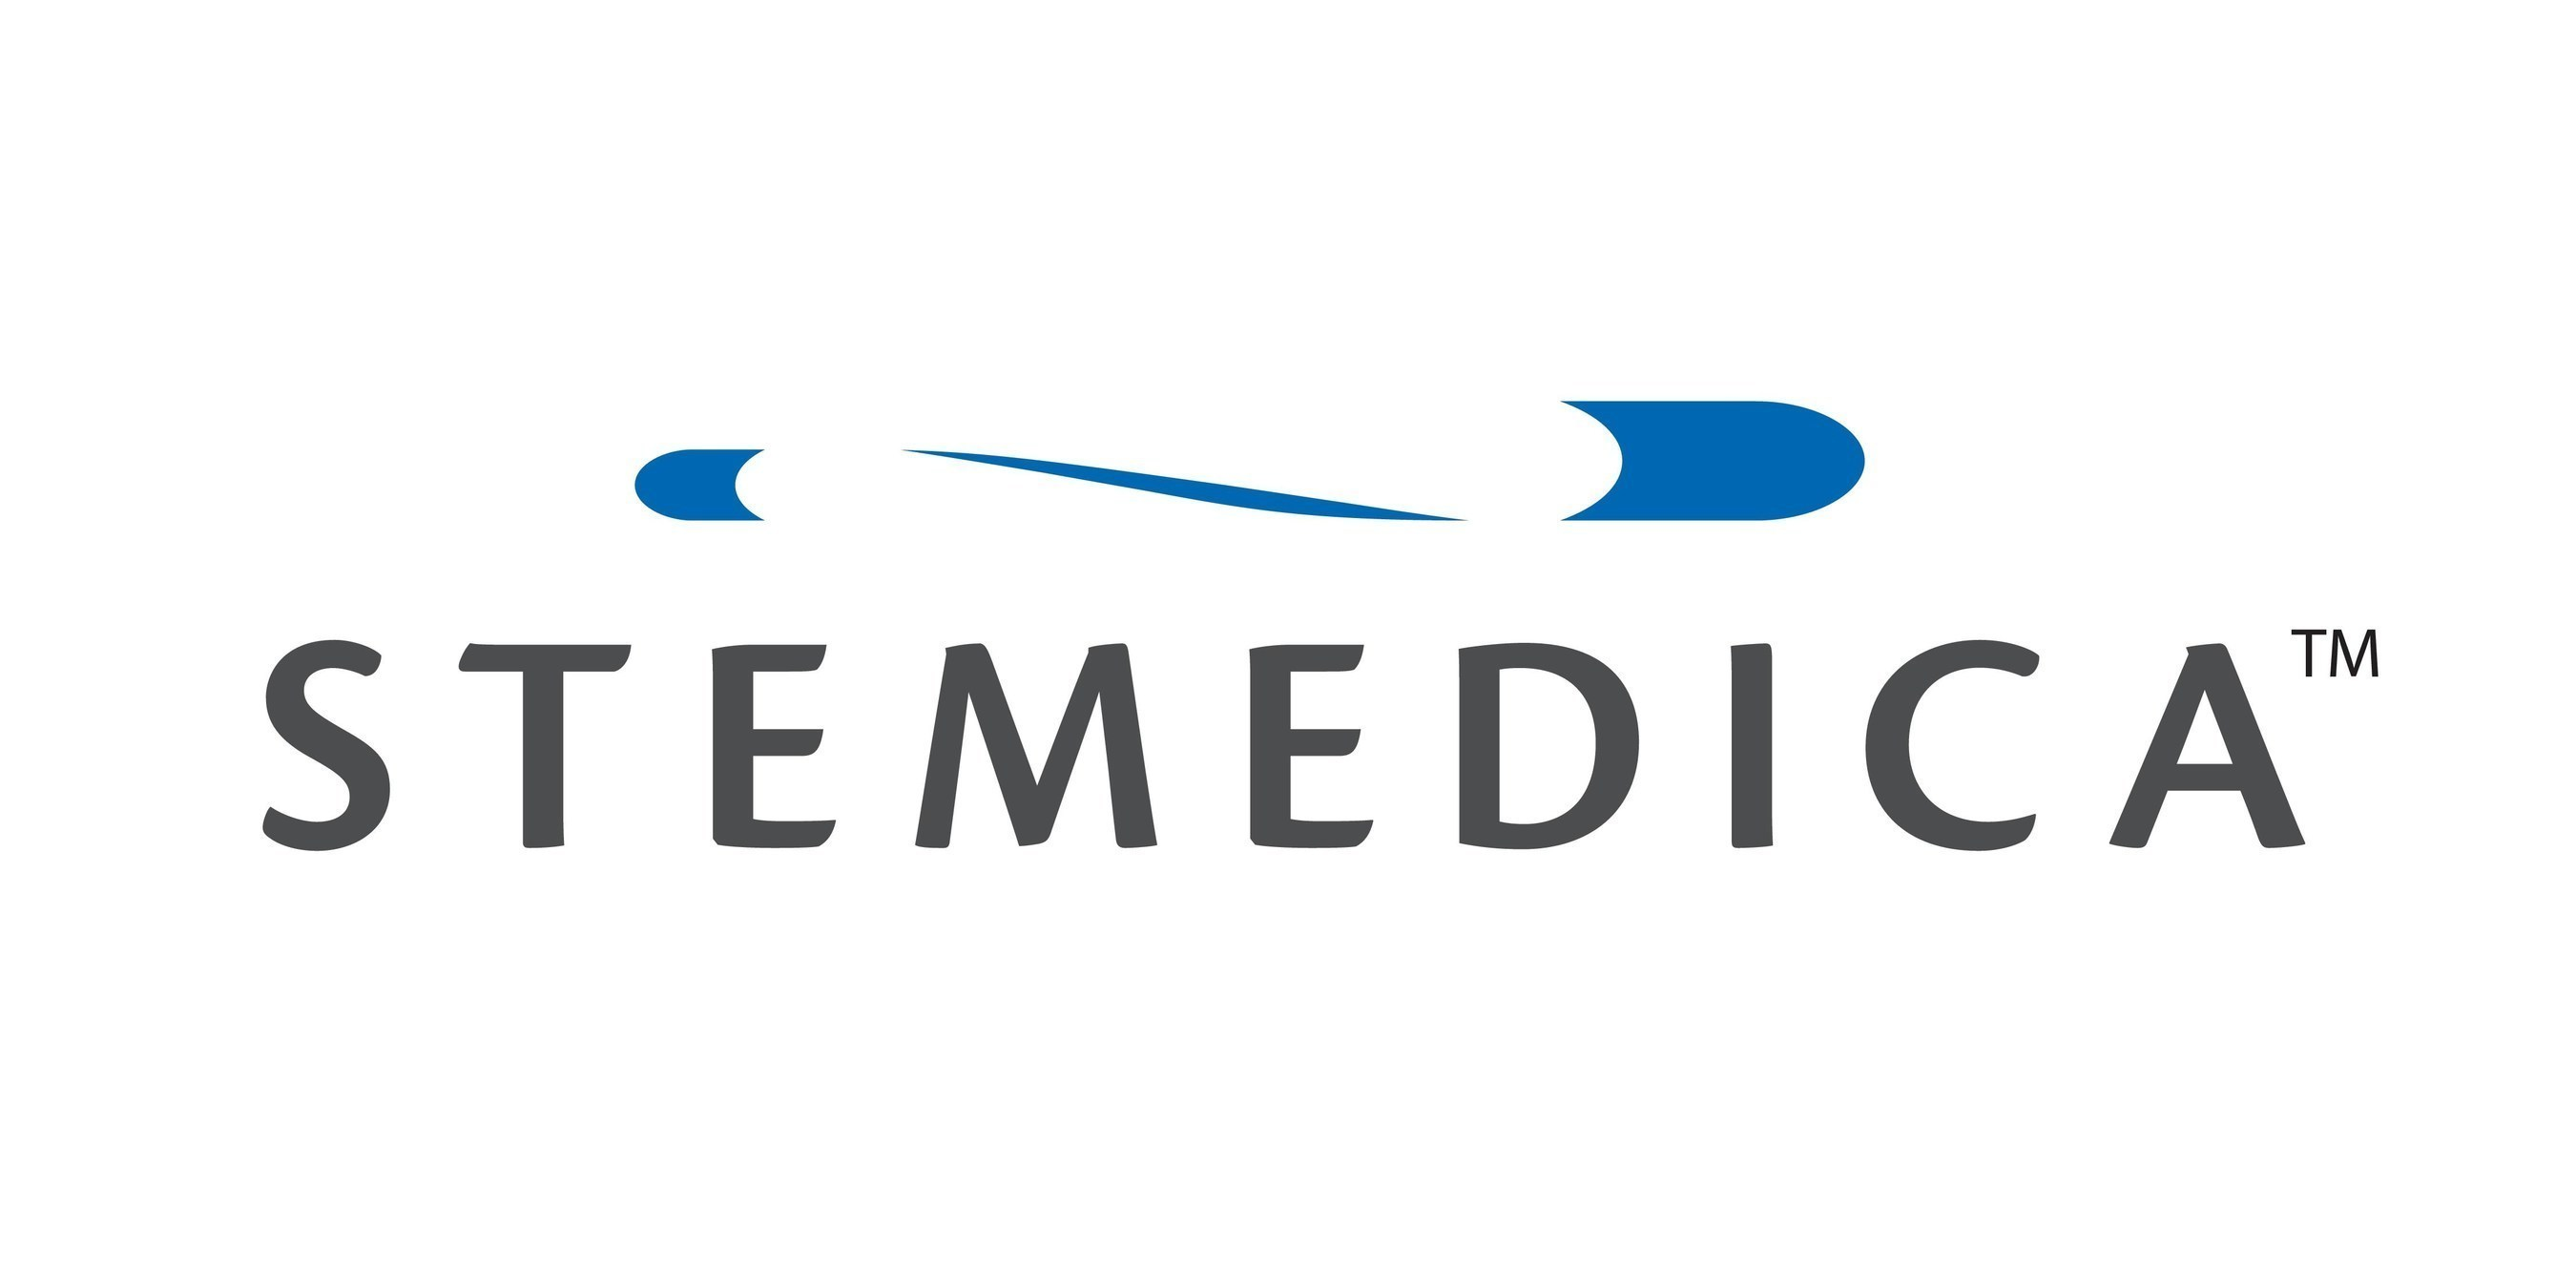 Stemedica Cell Technologies, Inc. is a specialty biopharmaceutical company which manufactures best-in-class allogeneic adult stem cells and stem cell factors. The company is a government licensed manufacturer of cGMP, clinical-grade stem cells currently used in US-based clinical trials for acute myocardial infarction, chronic heart failure, cutaneous photoaging and ischemic stroke. Stemedica's products are also used on a worldwide basis …